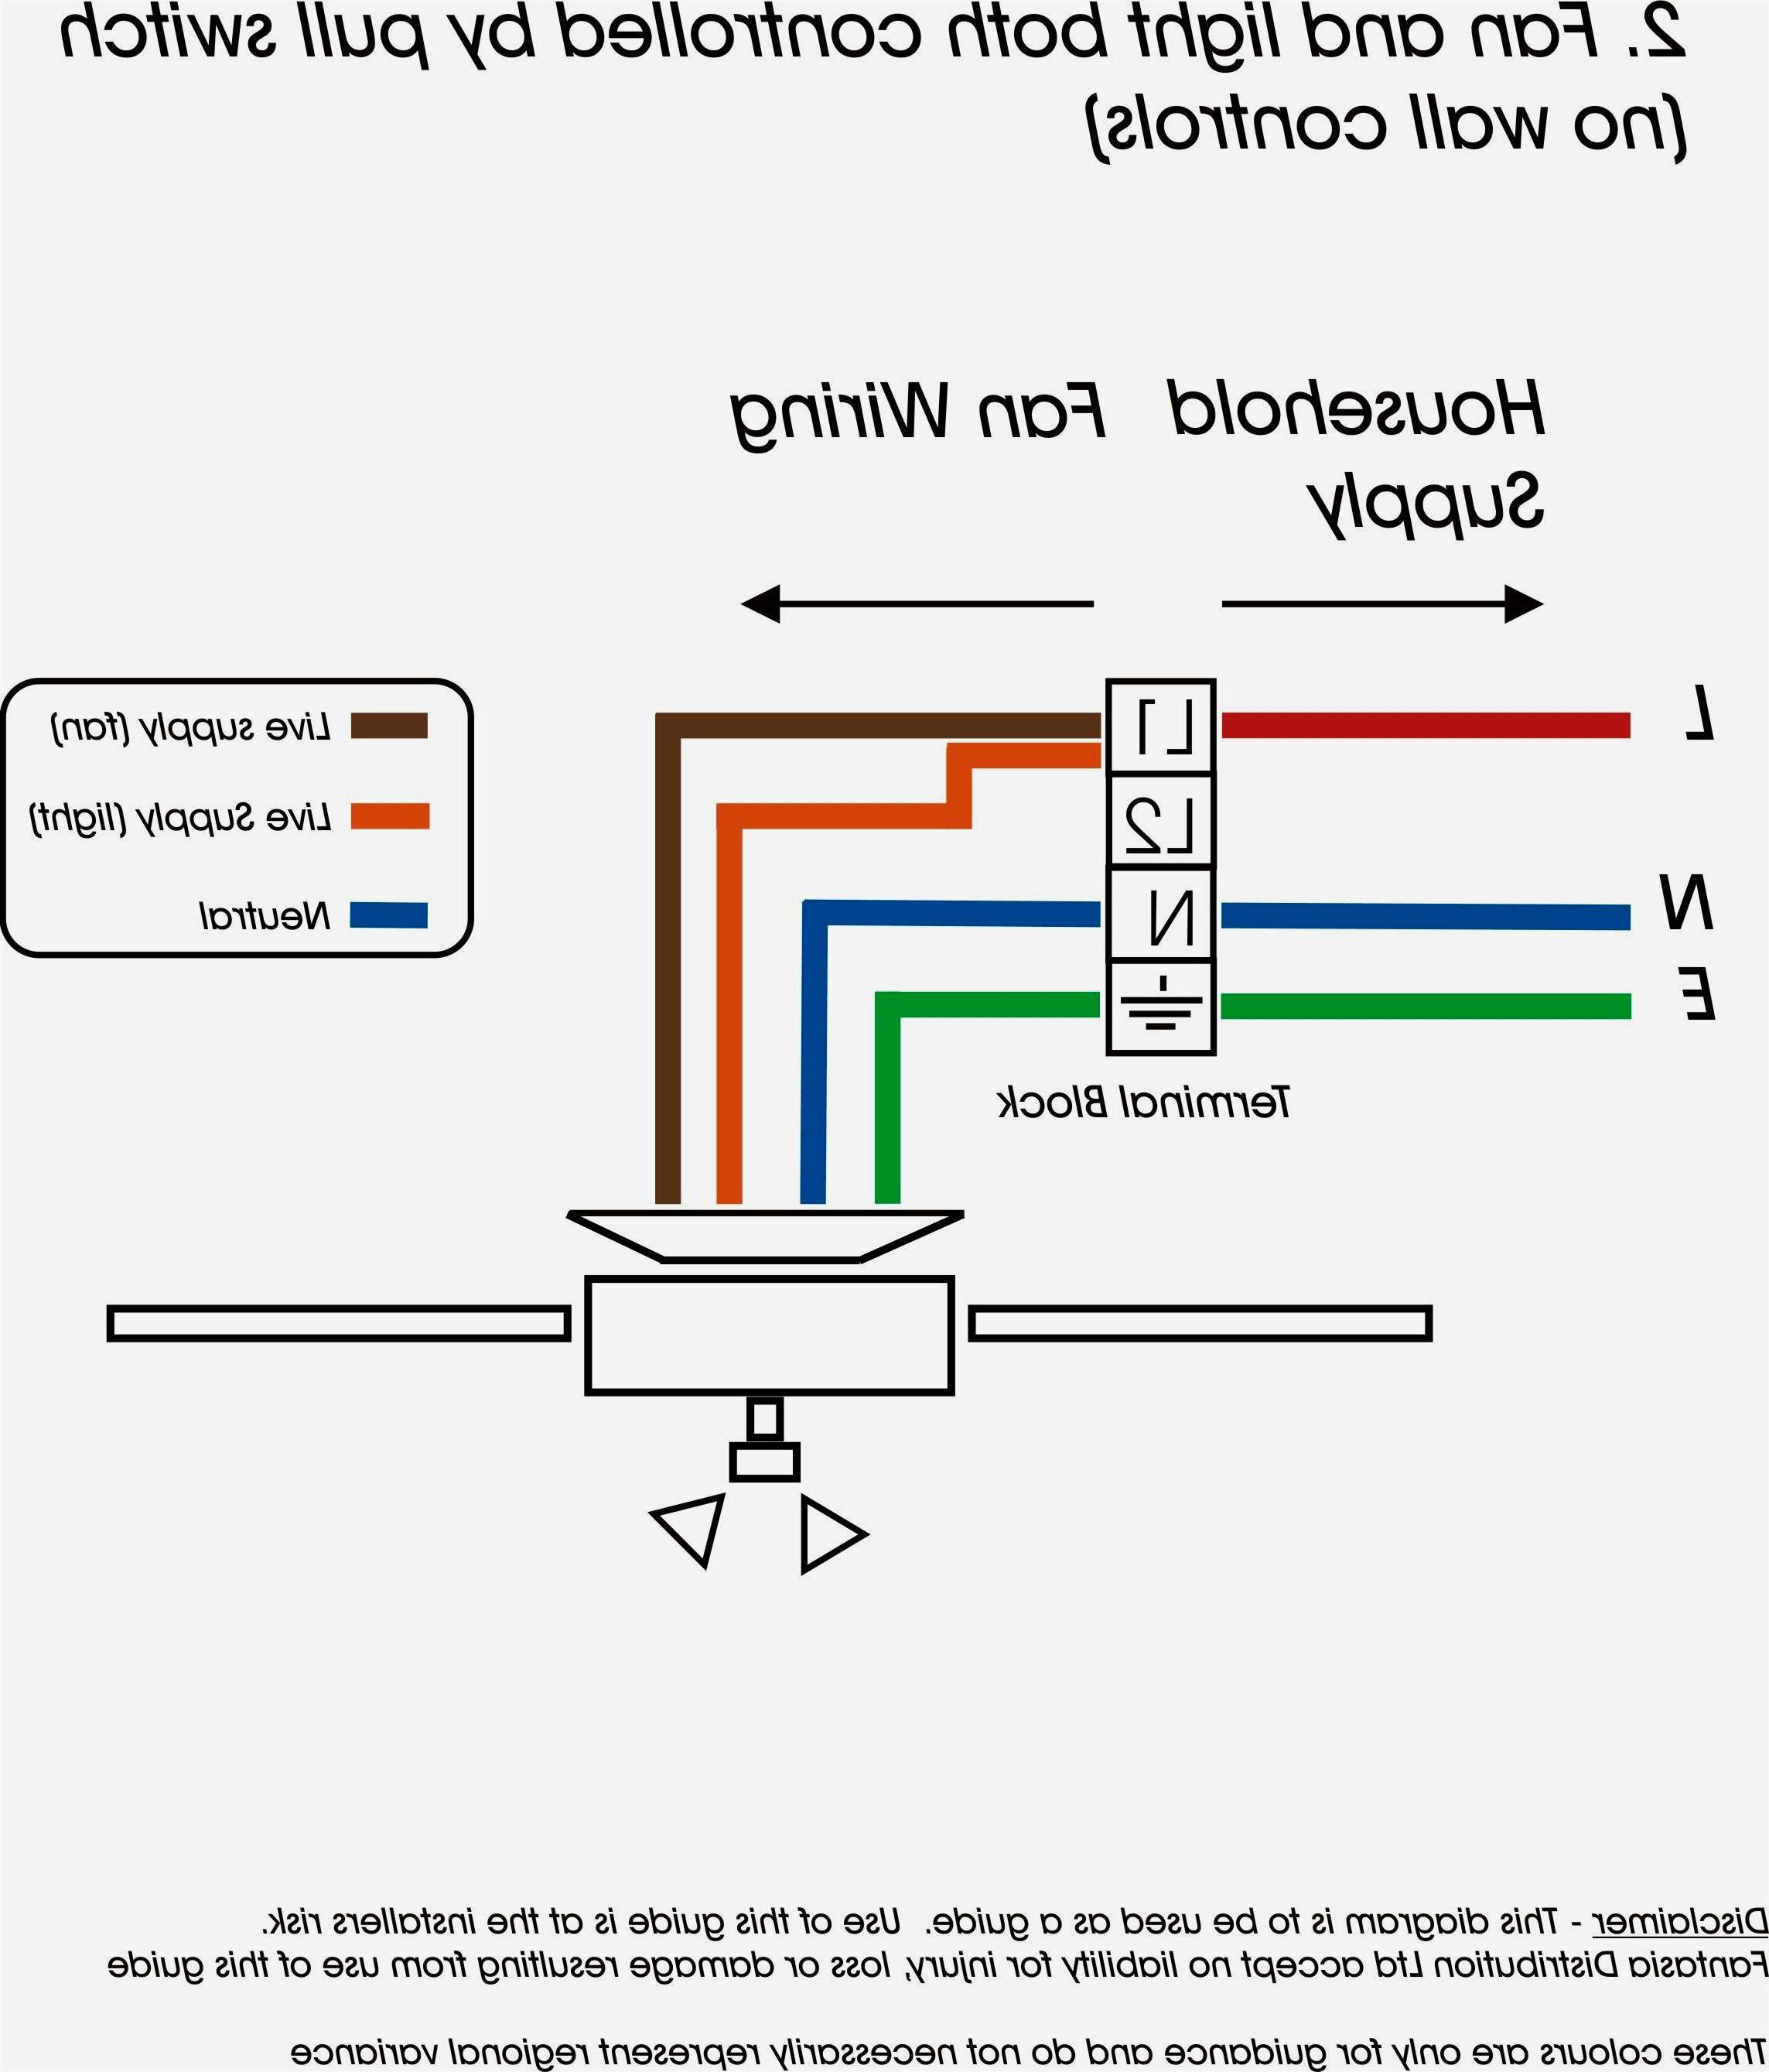 metra 70 7550 wiring diagram Collection-ceiling fan and light wiring diagram Download Hampton Bay Ceiling Fan Wiring Diagram Gallery 20 19-e